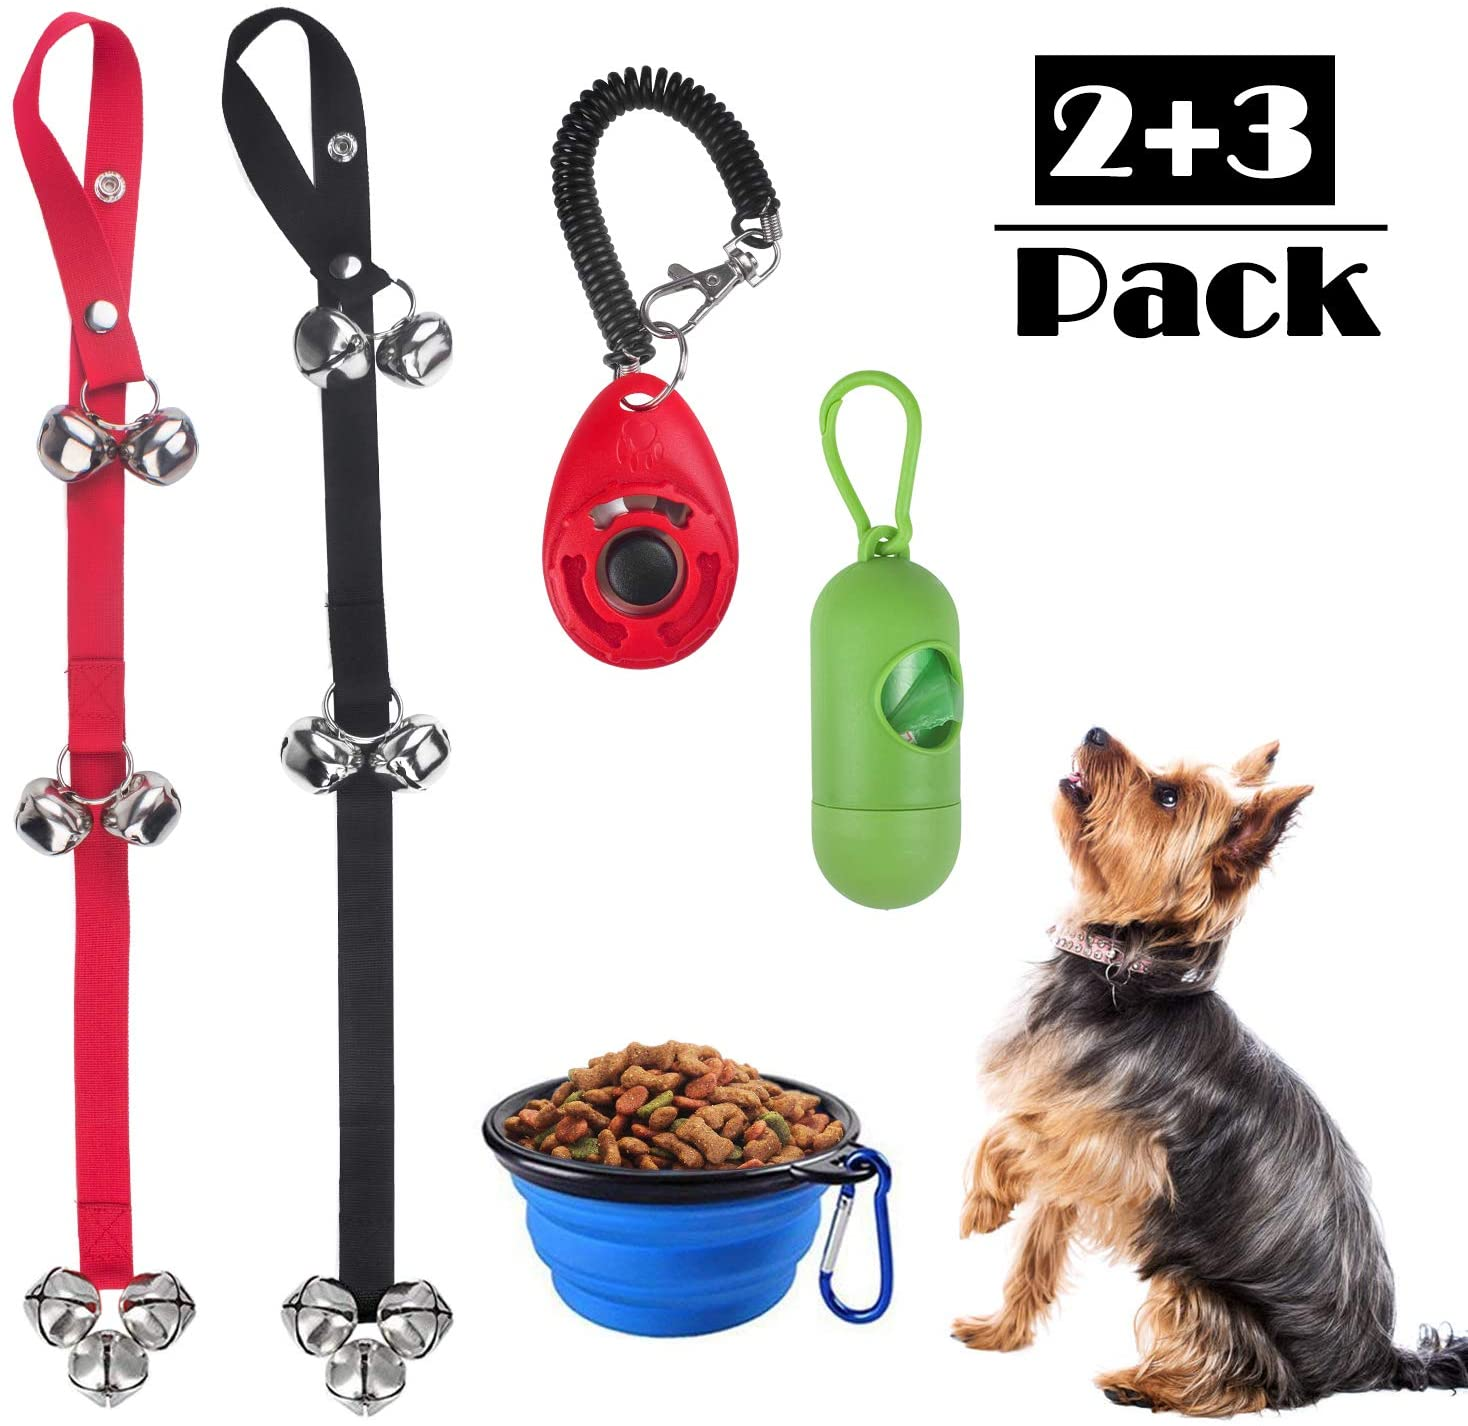 Beinhome Dog Training Bells for Door, Set of 2 Adjustable Puppy Bell for Potty Training, Dog Doorbell with Collapsible Travel Pet Cat Dog Bowl & Training Clicker & Waste Bag Dispenser